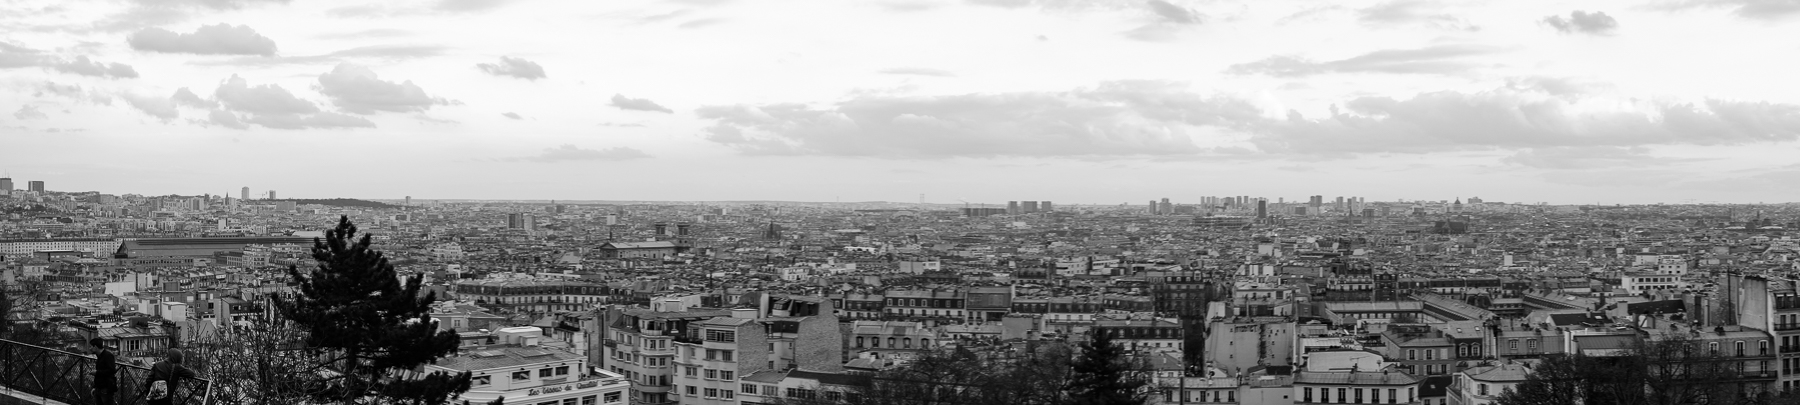 Panoramic view of Paris France from Montemartre